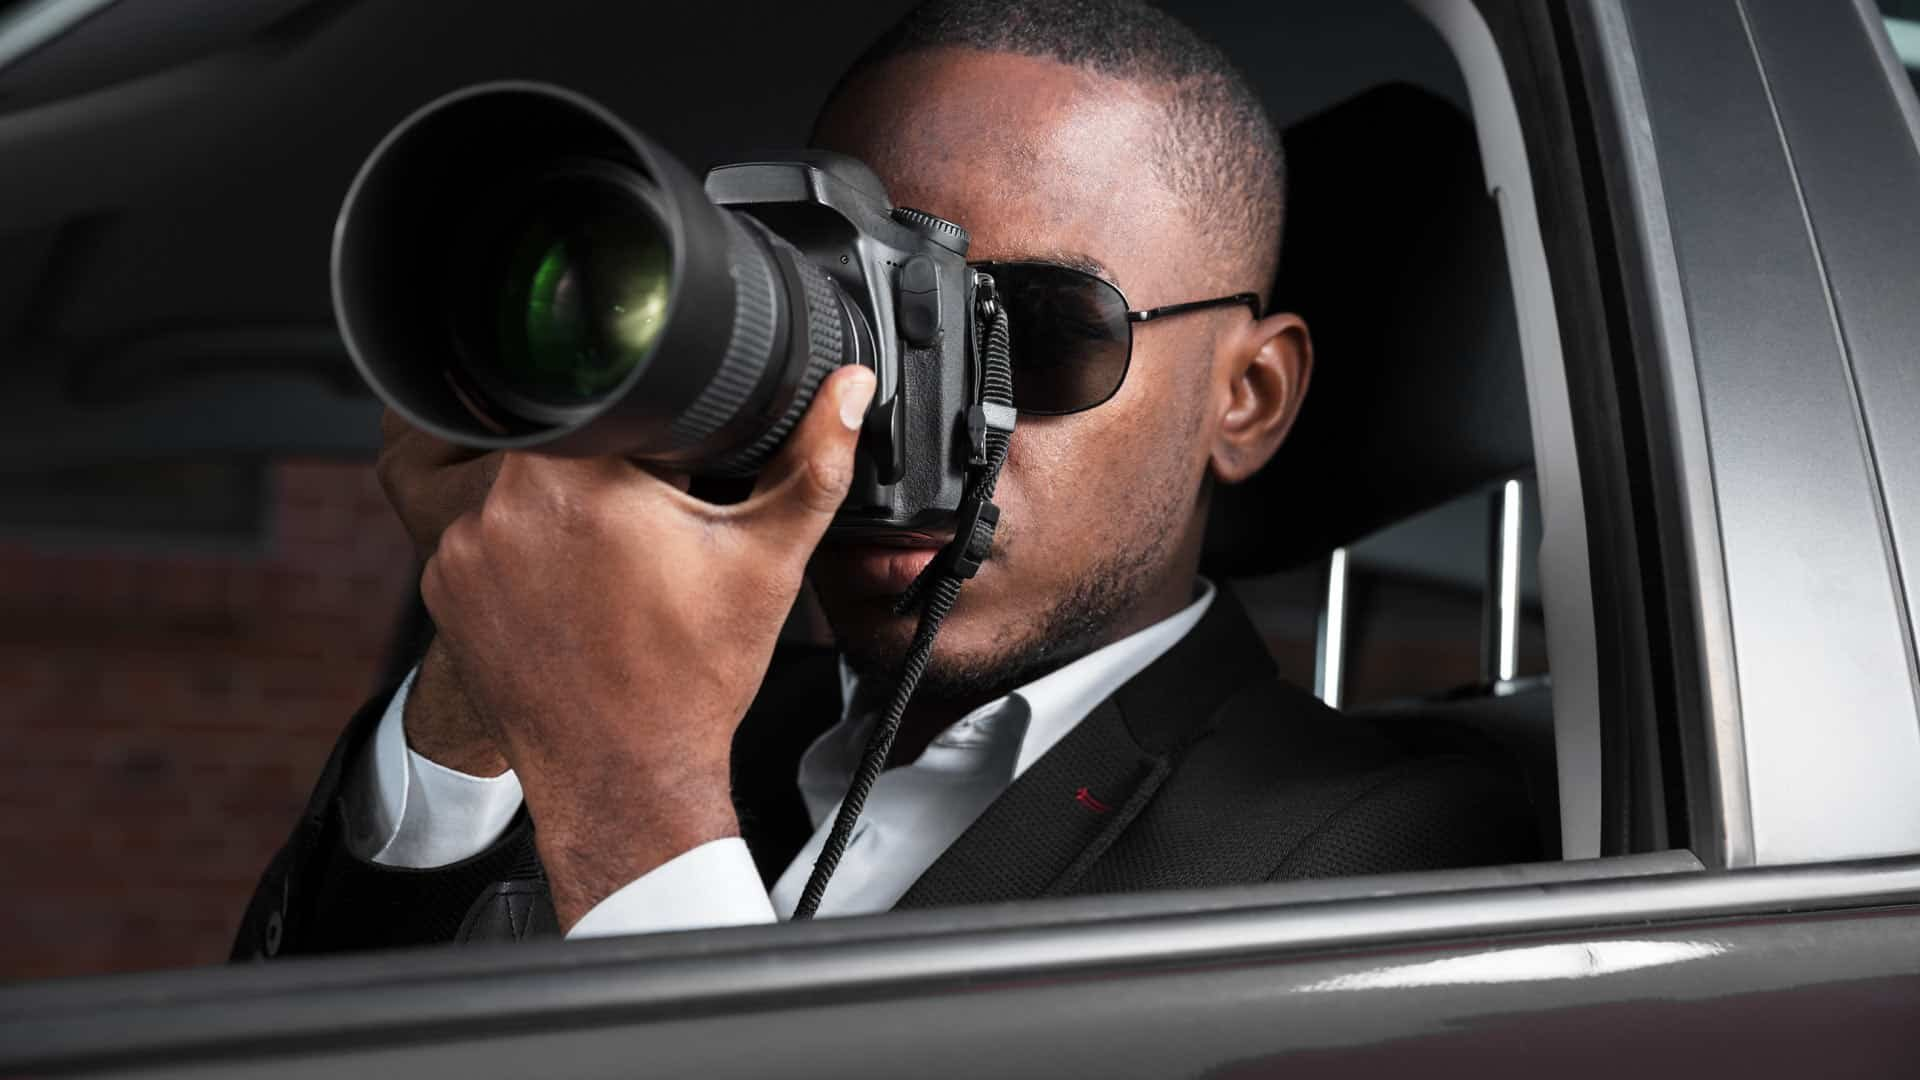 nyc-private-investigator-taking-photos.jpg